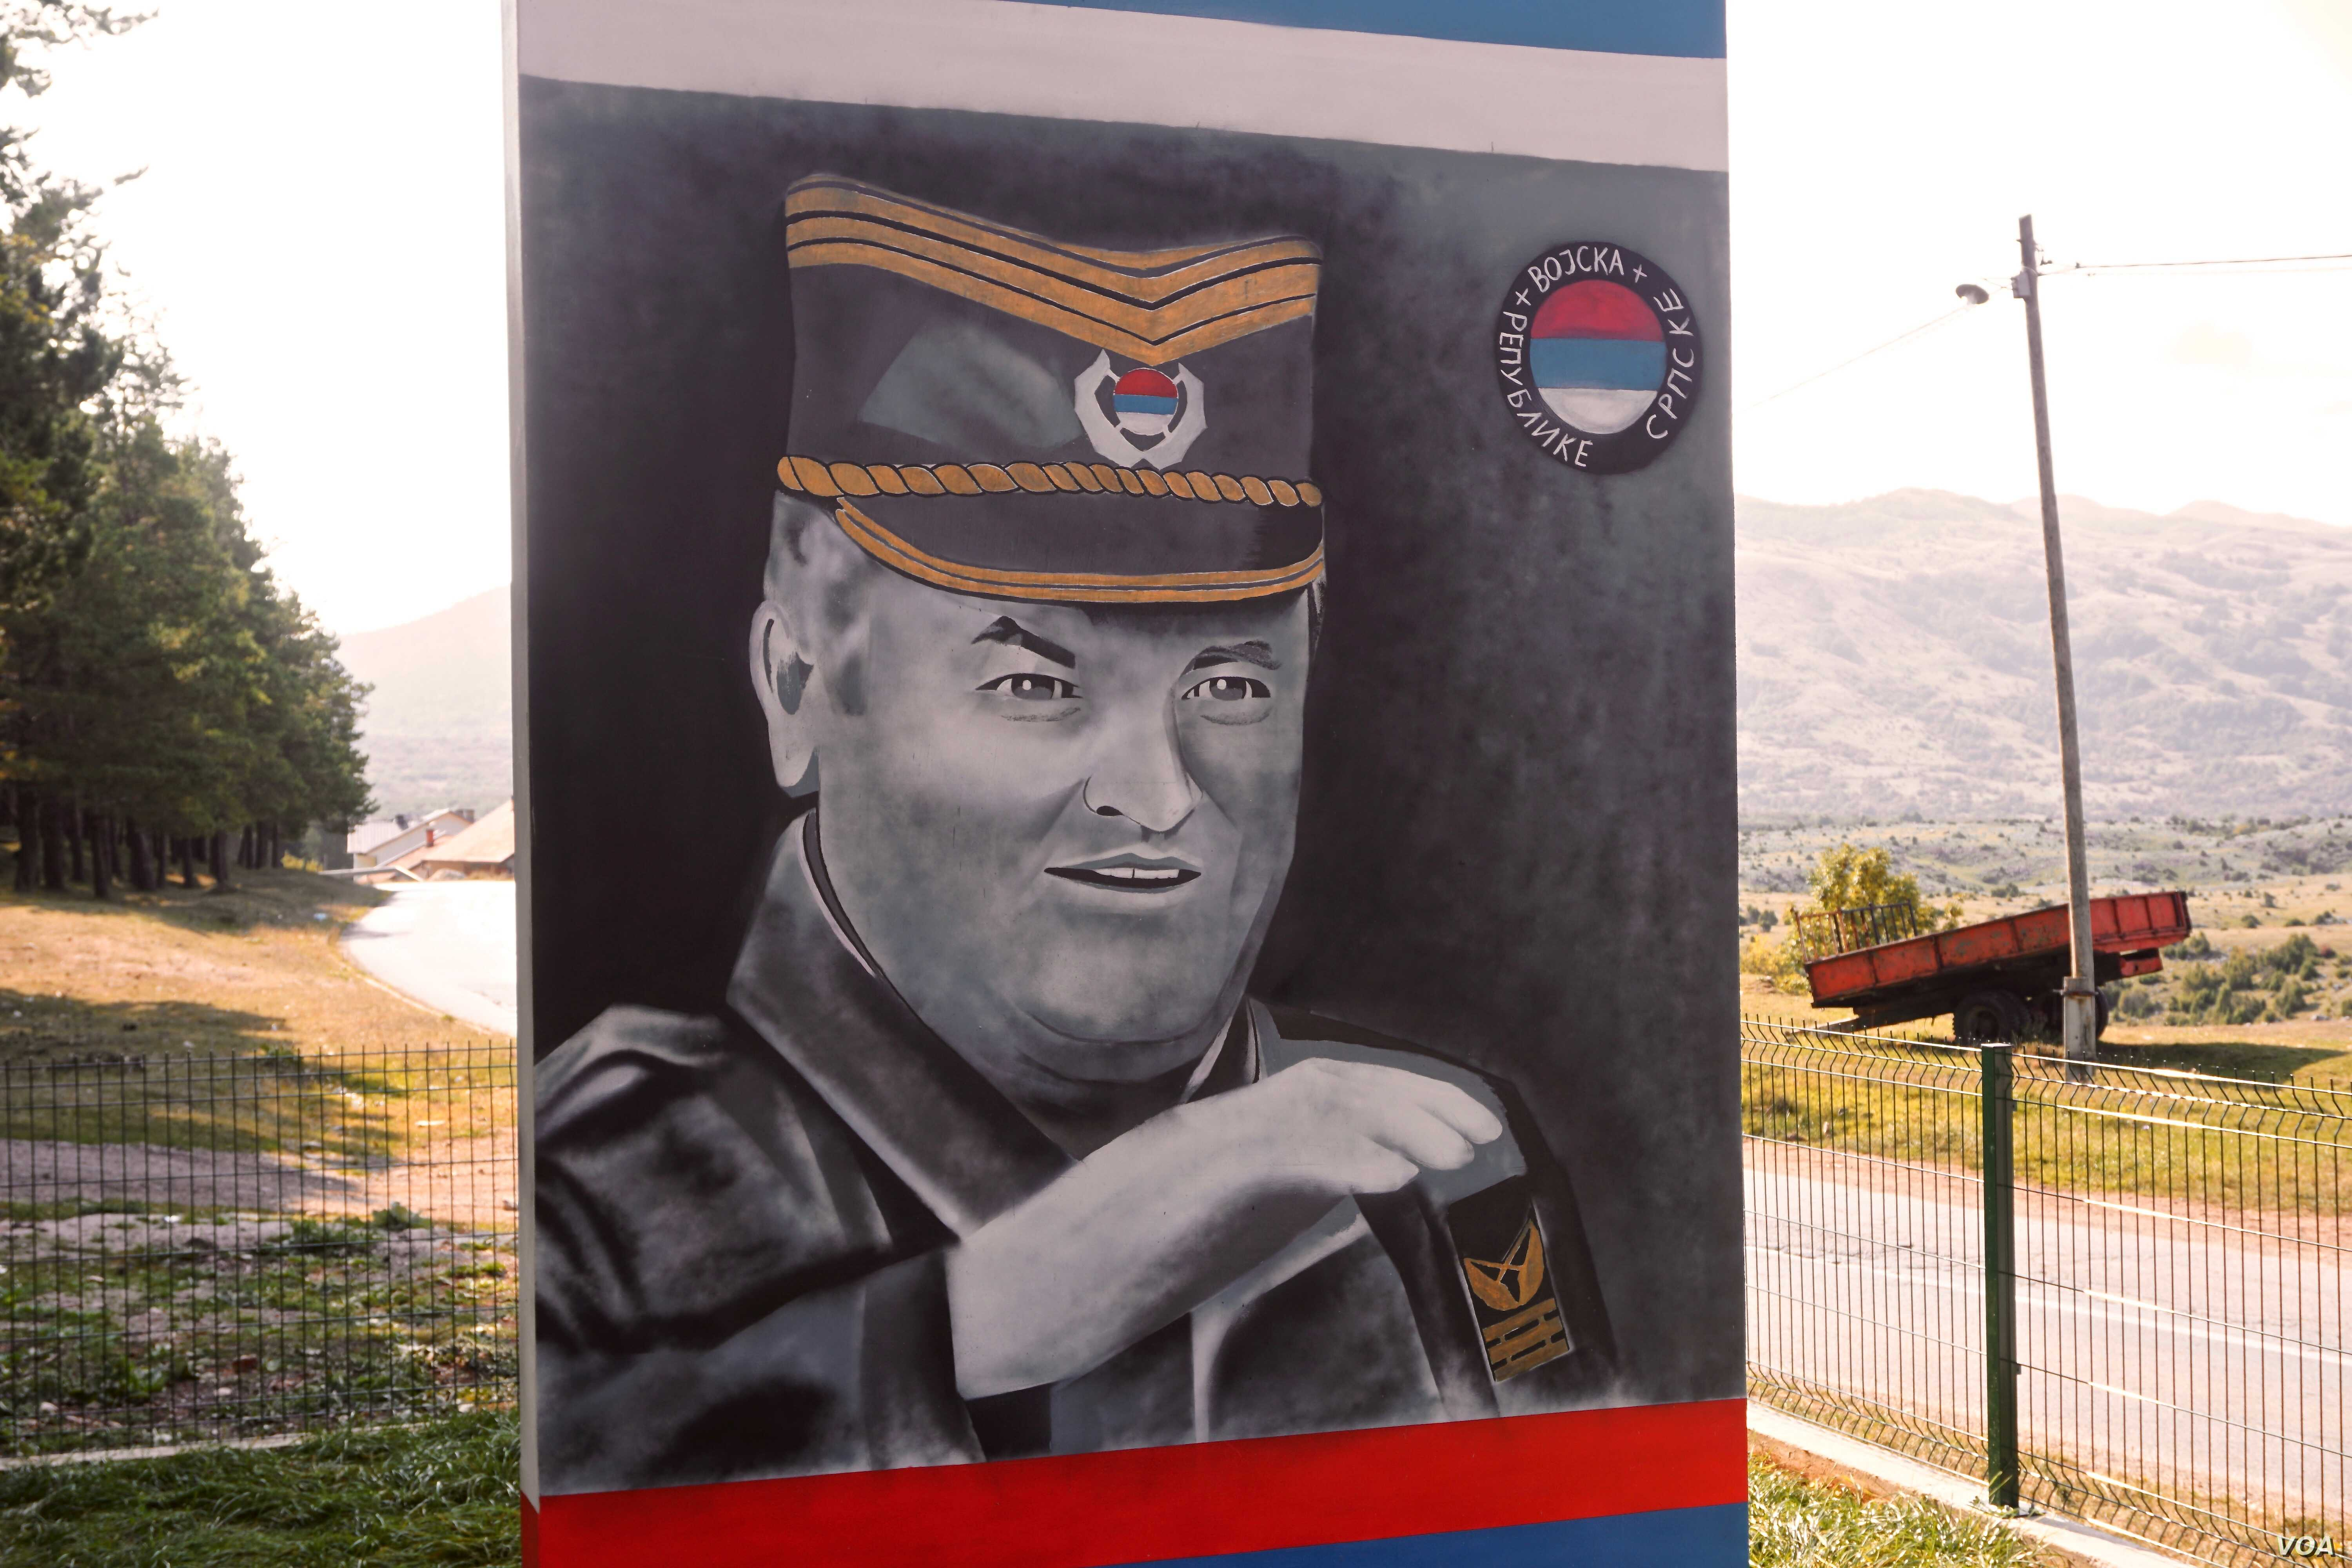 """Ratko Mladić: The 1995 Srebrenica massacre was carried out by units of the Bosnian Serb Army of Republika Srpska under the command of Ratko Mladić. This month his supporters erected a mural lauding him as a """"Serb hero"""" in his hometown of Kalino..."""